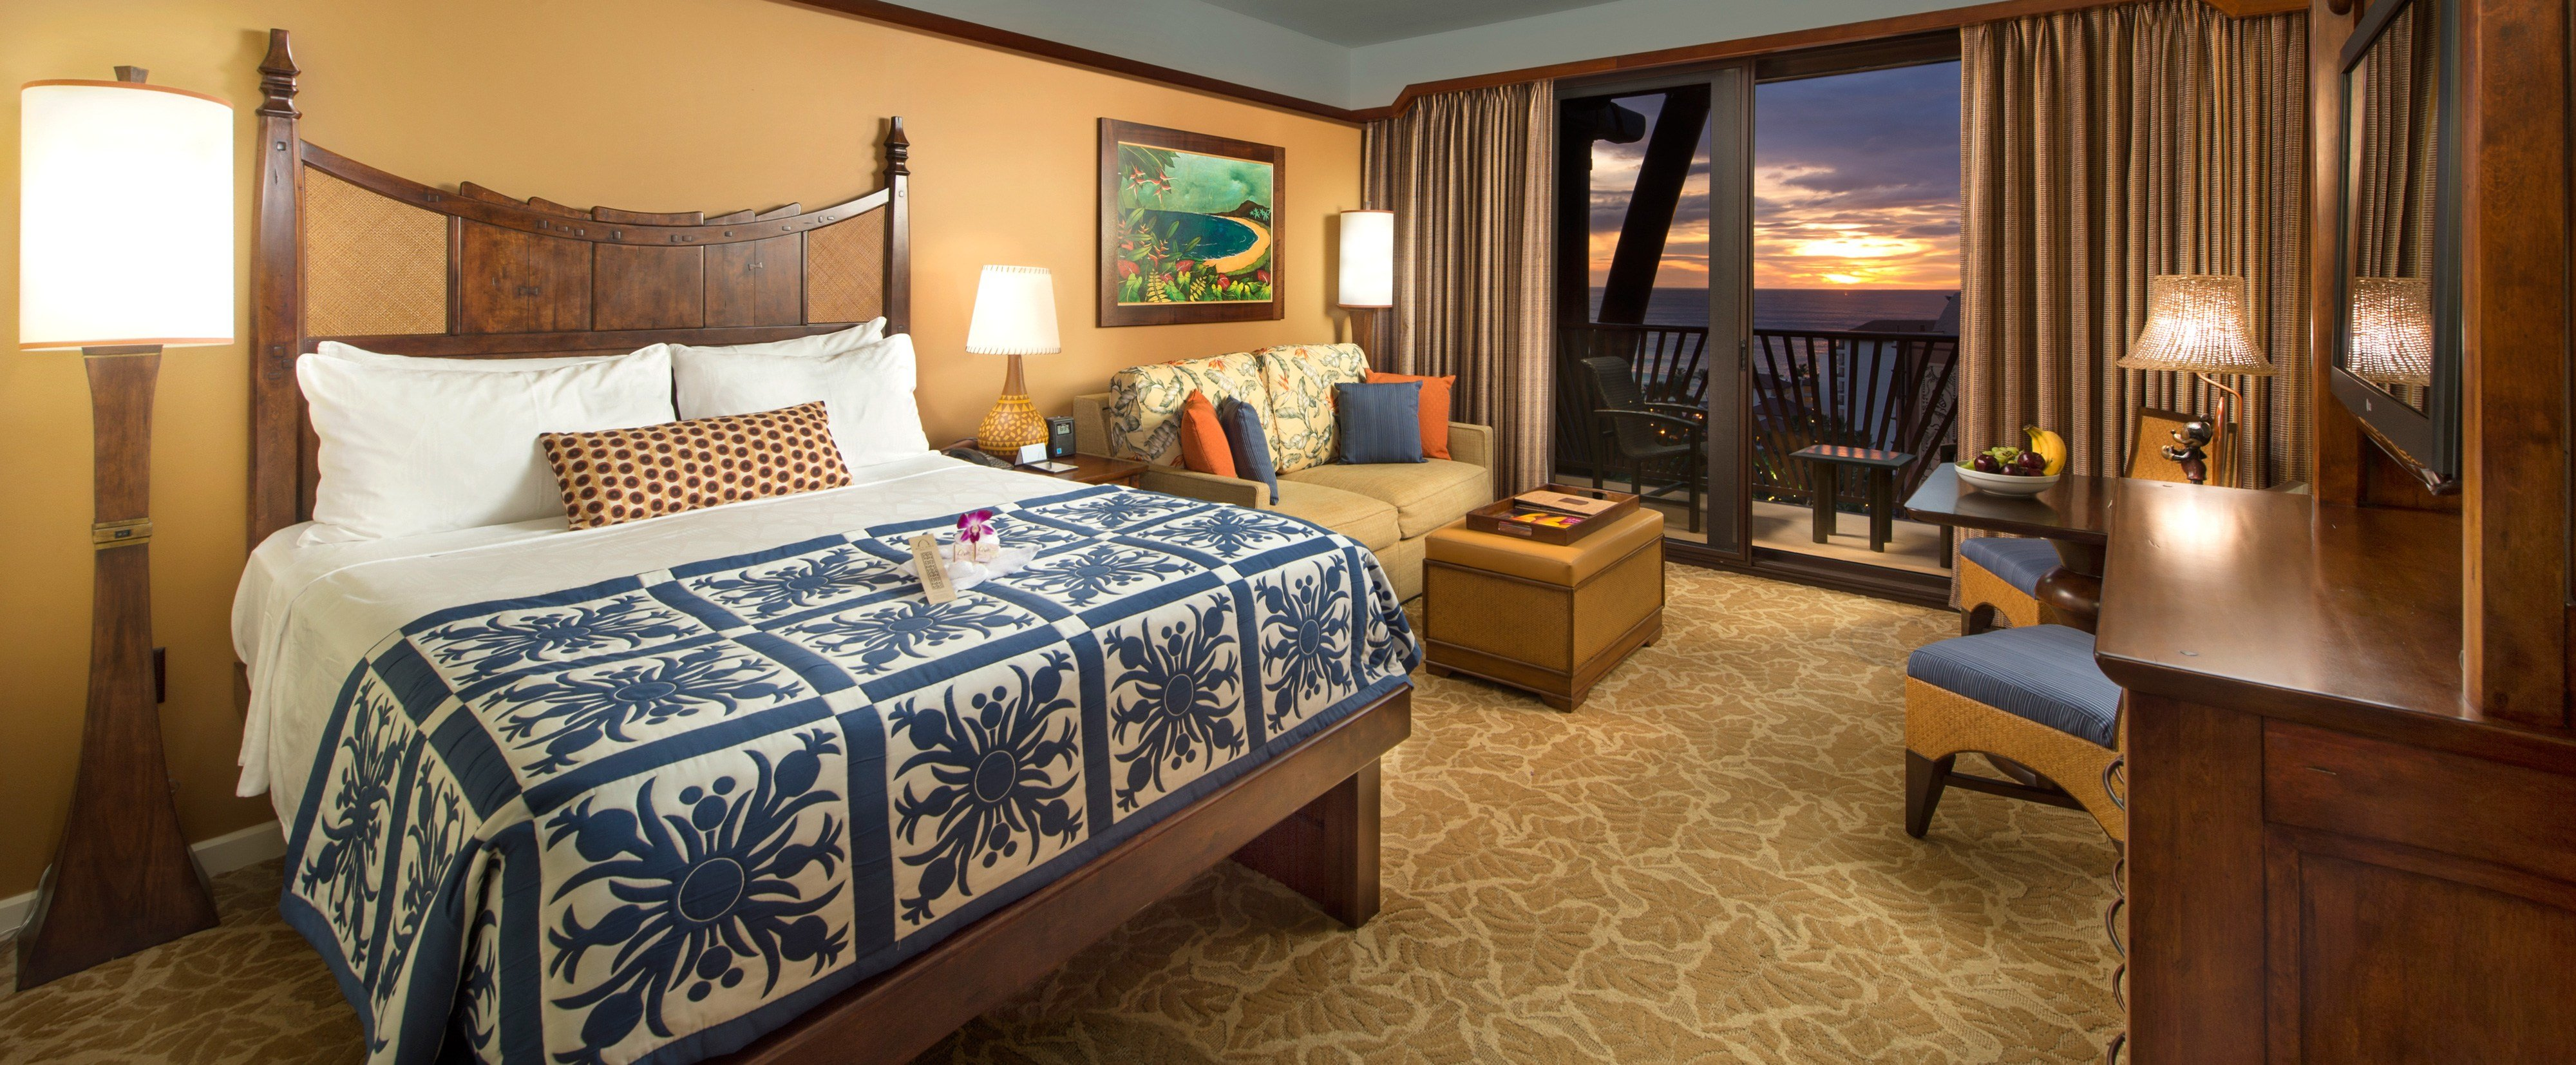 Best Standard Hotel Rooms Aulani Hawaii Resort Spa With Pictures